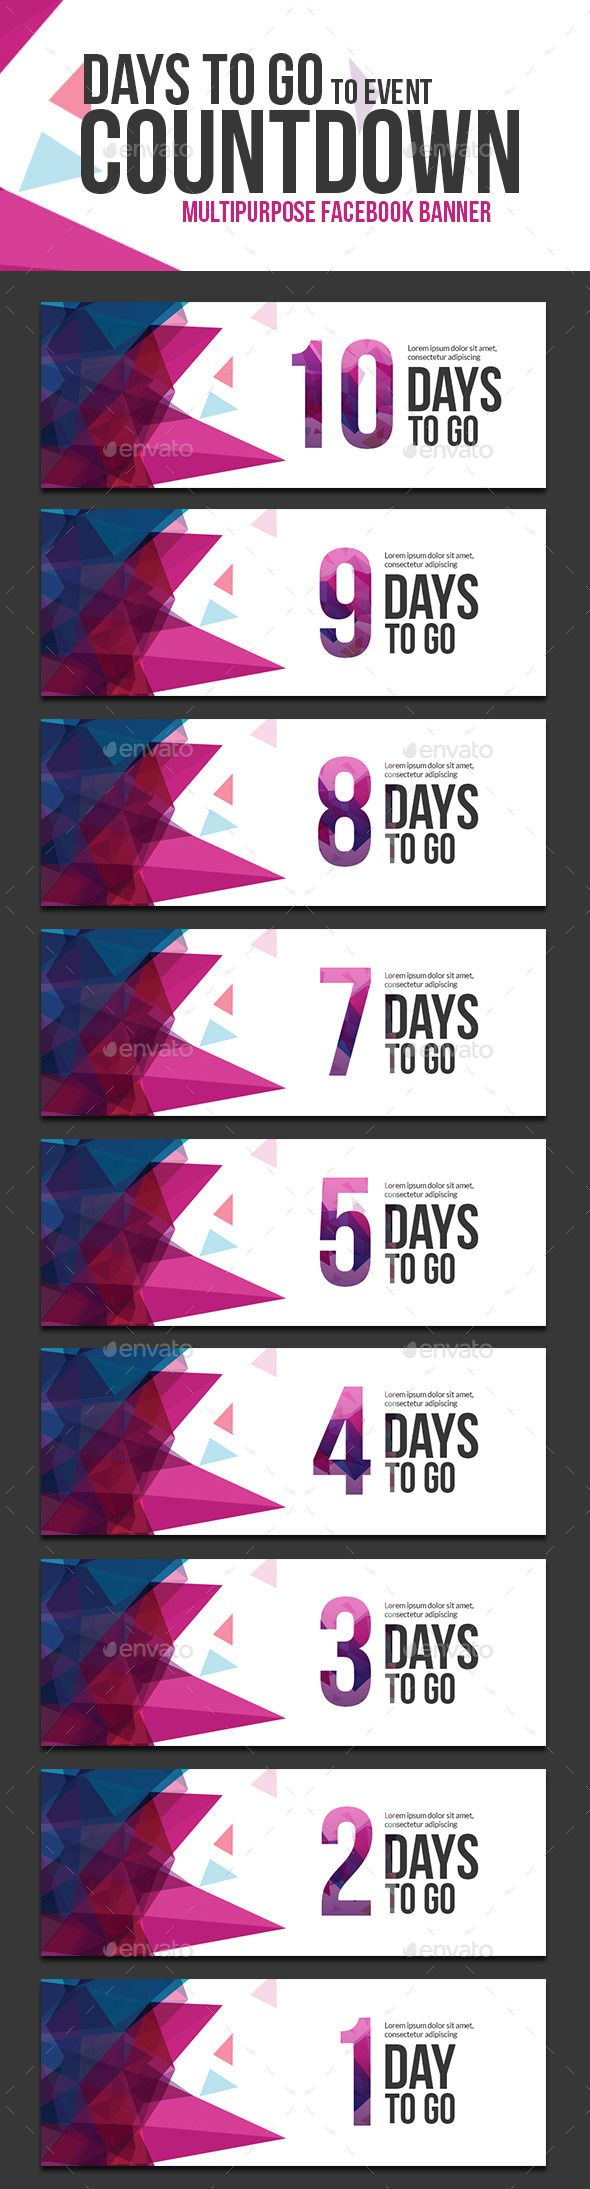 Days to go Countdown Web Banner Template #design Download: http://graphicriver.net/item/days-to-go-countdown-banner/11338341?ref=ksioks